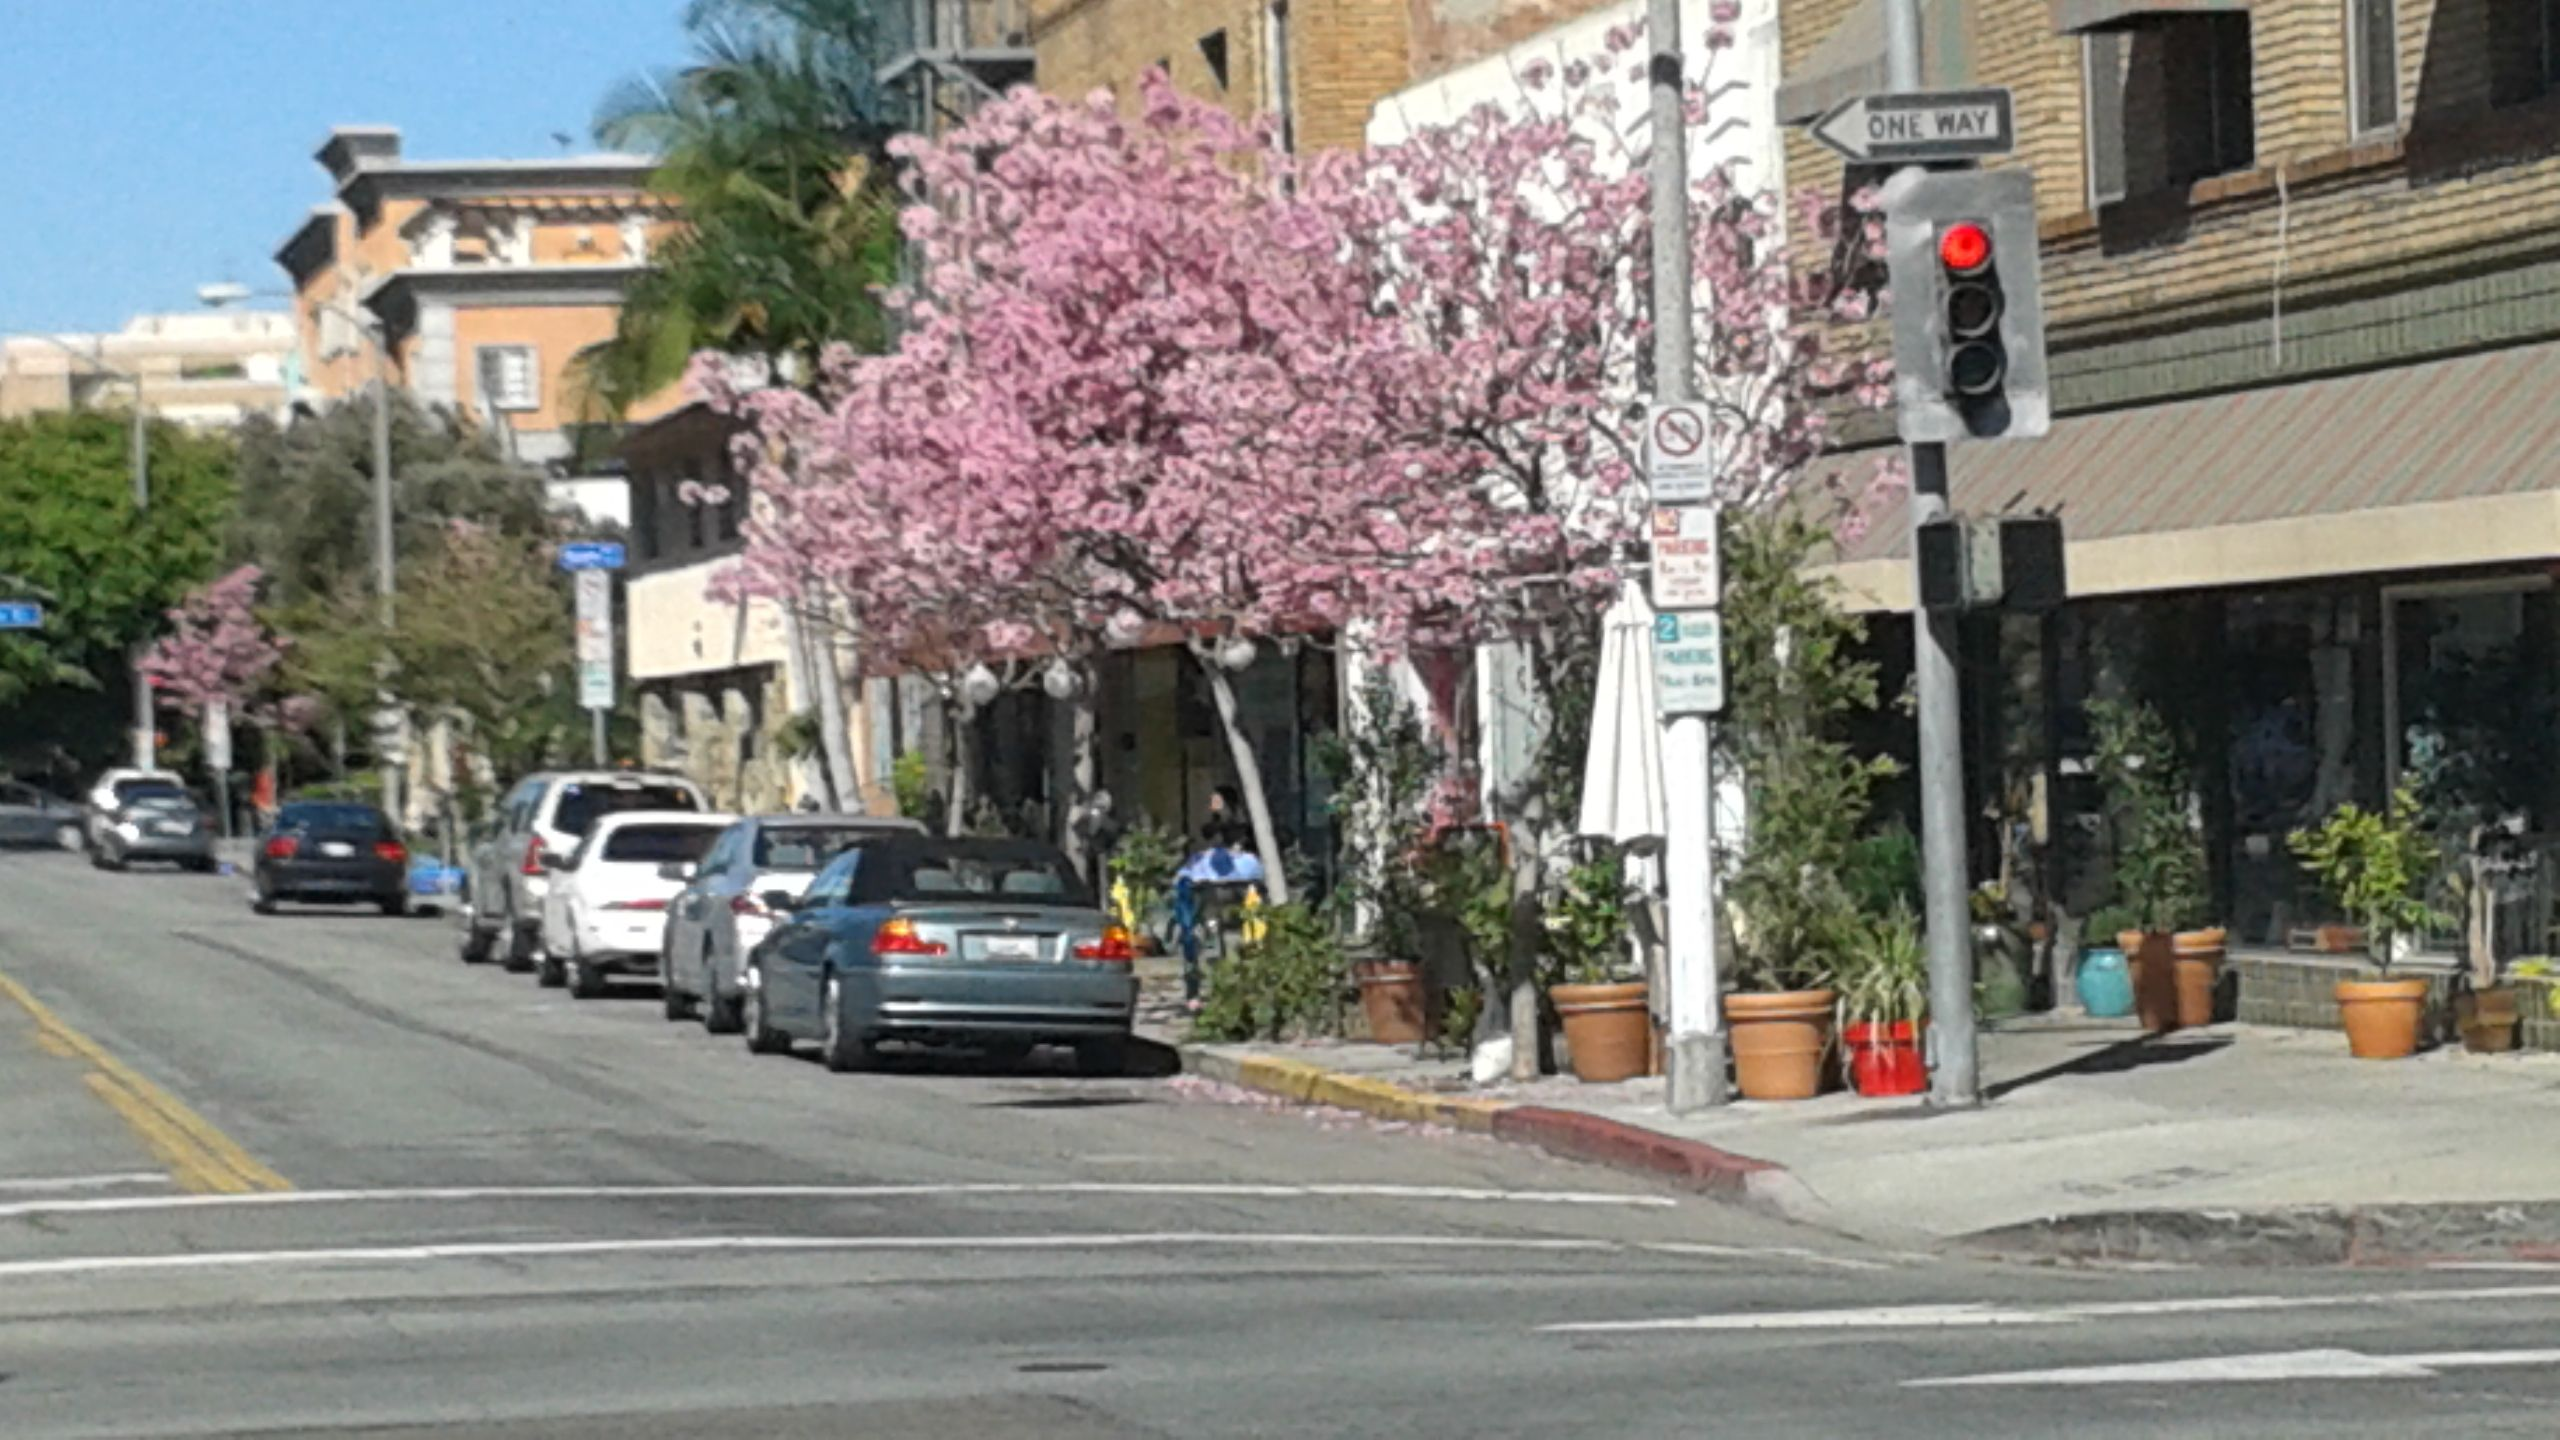 Long Beach Has Pink Trees I See Beauty Pink Trees Beach Street View